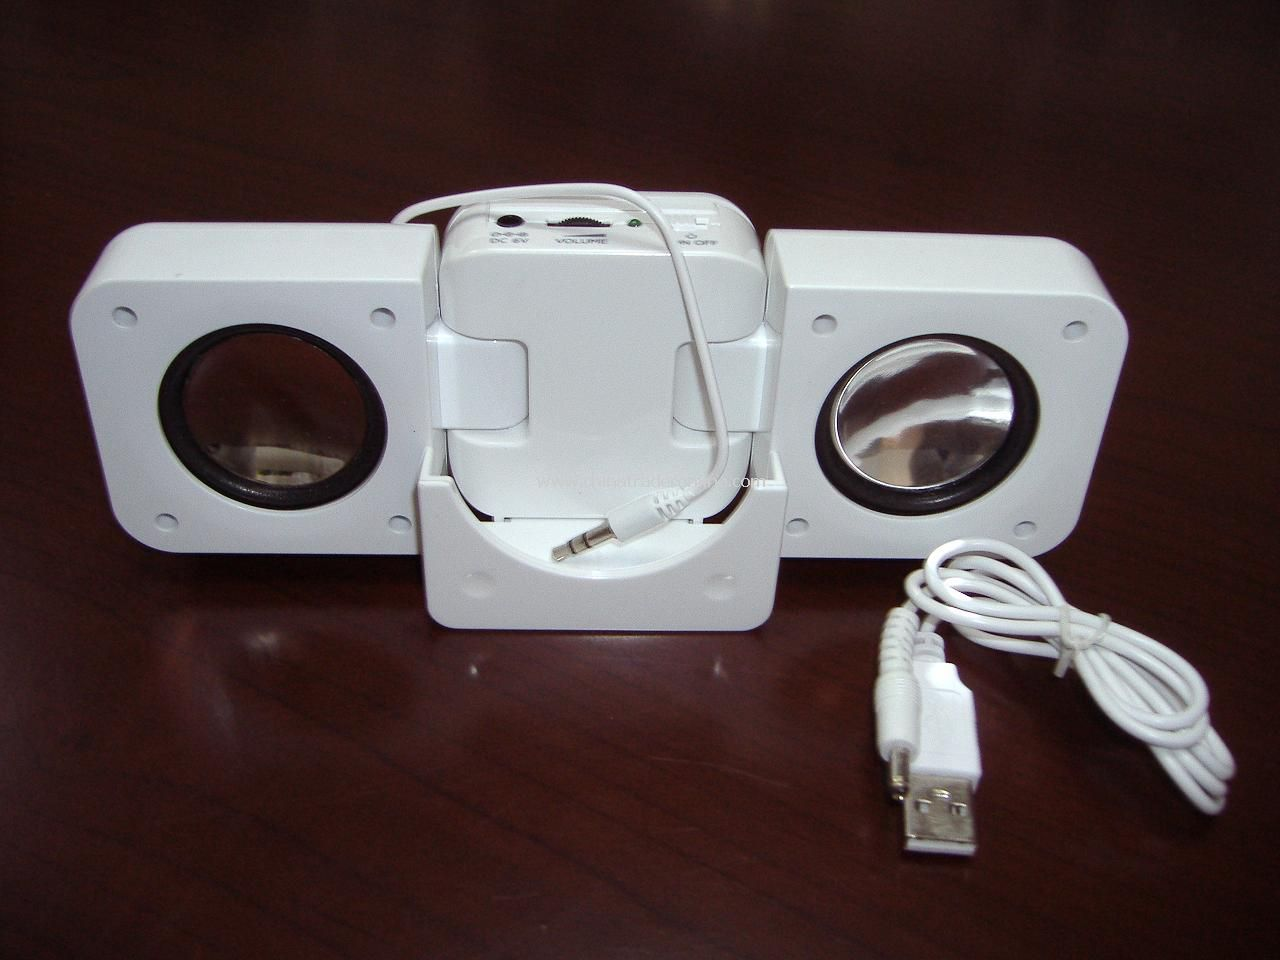 Mini speaker, portable speaker, with USB port